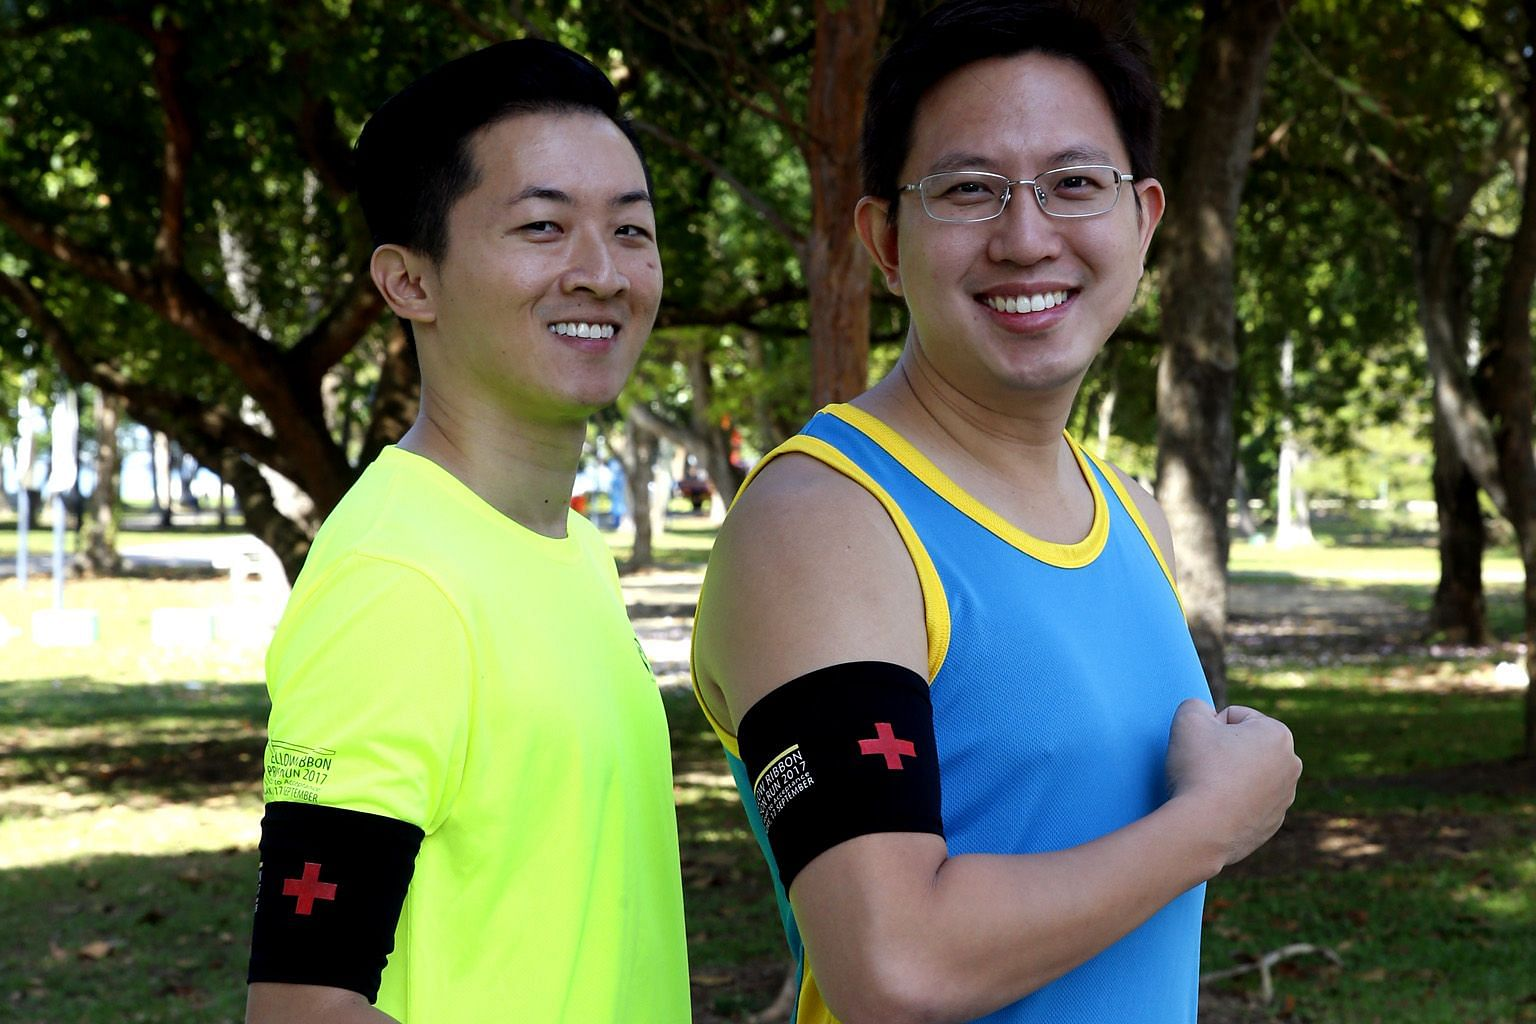 Nurse manager Loh Lip Chiang, 38 (left), and Dr Henry Chua, 34, who both work for healthcare provider Parkway Pantai, are among the first aiders who will run with black armbands at the Yellow Ribbon Prison Run.